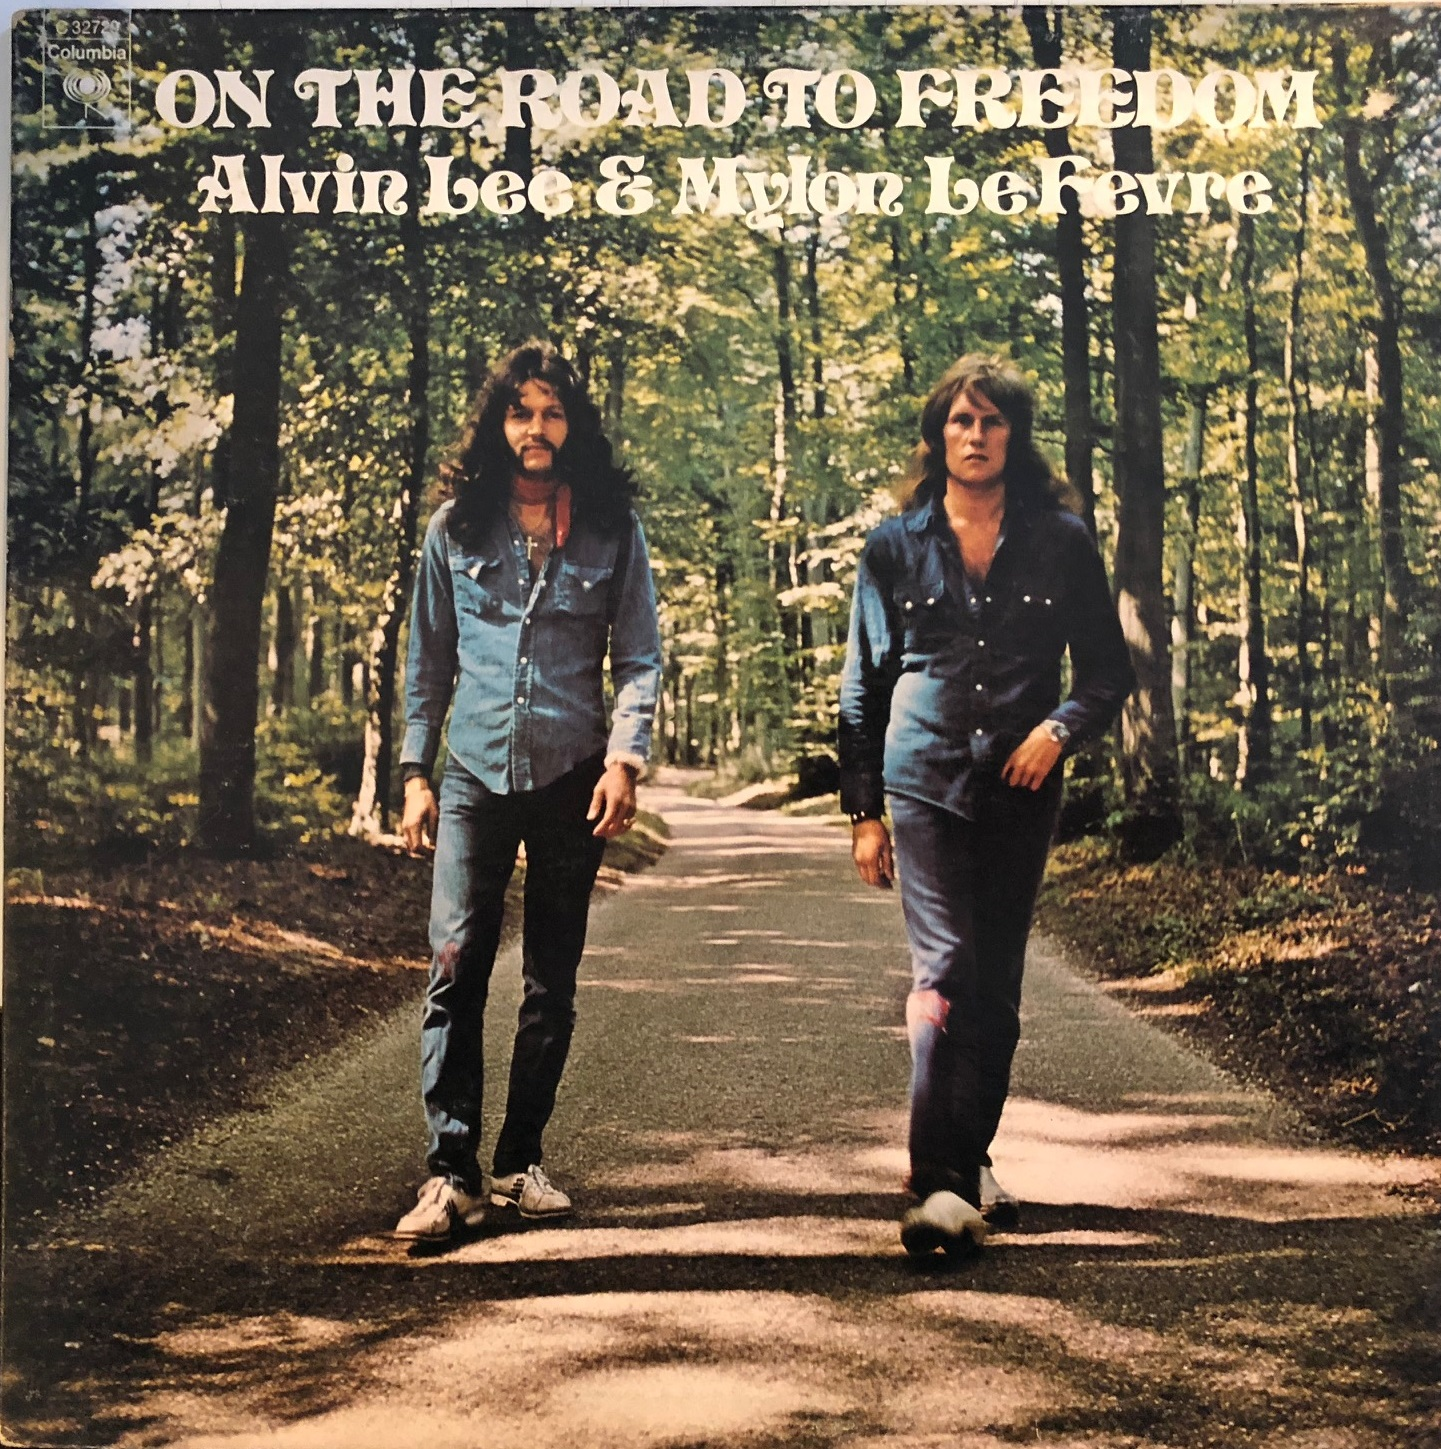 ALVIN LEE & MYLON LE FEVRE / ON THE ROAD TO FREEDO